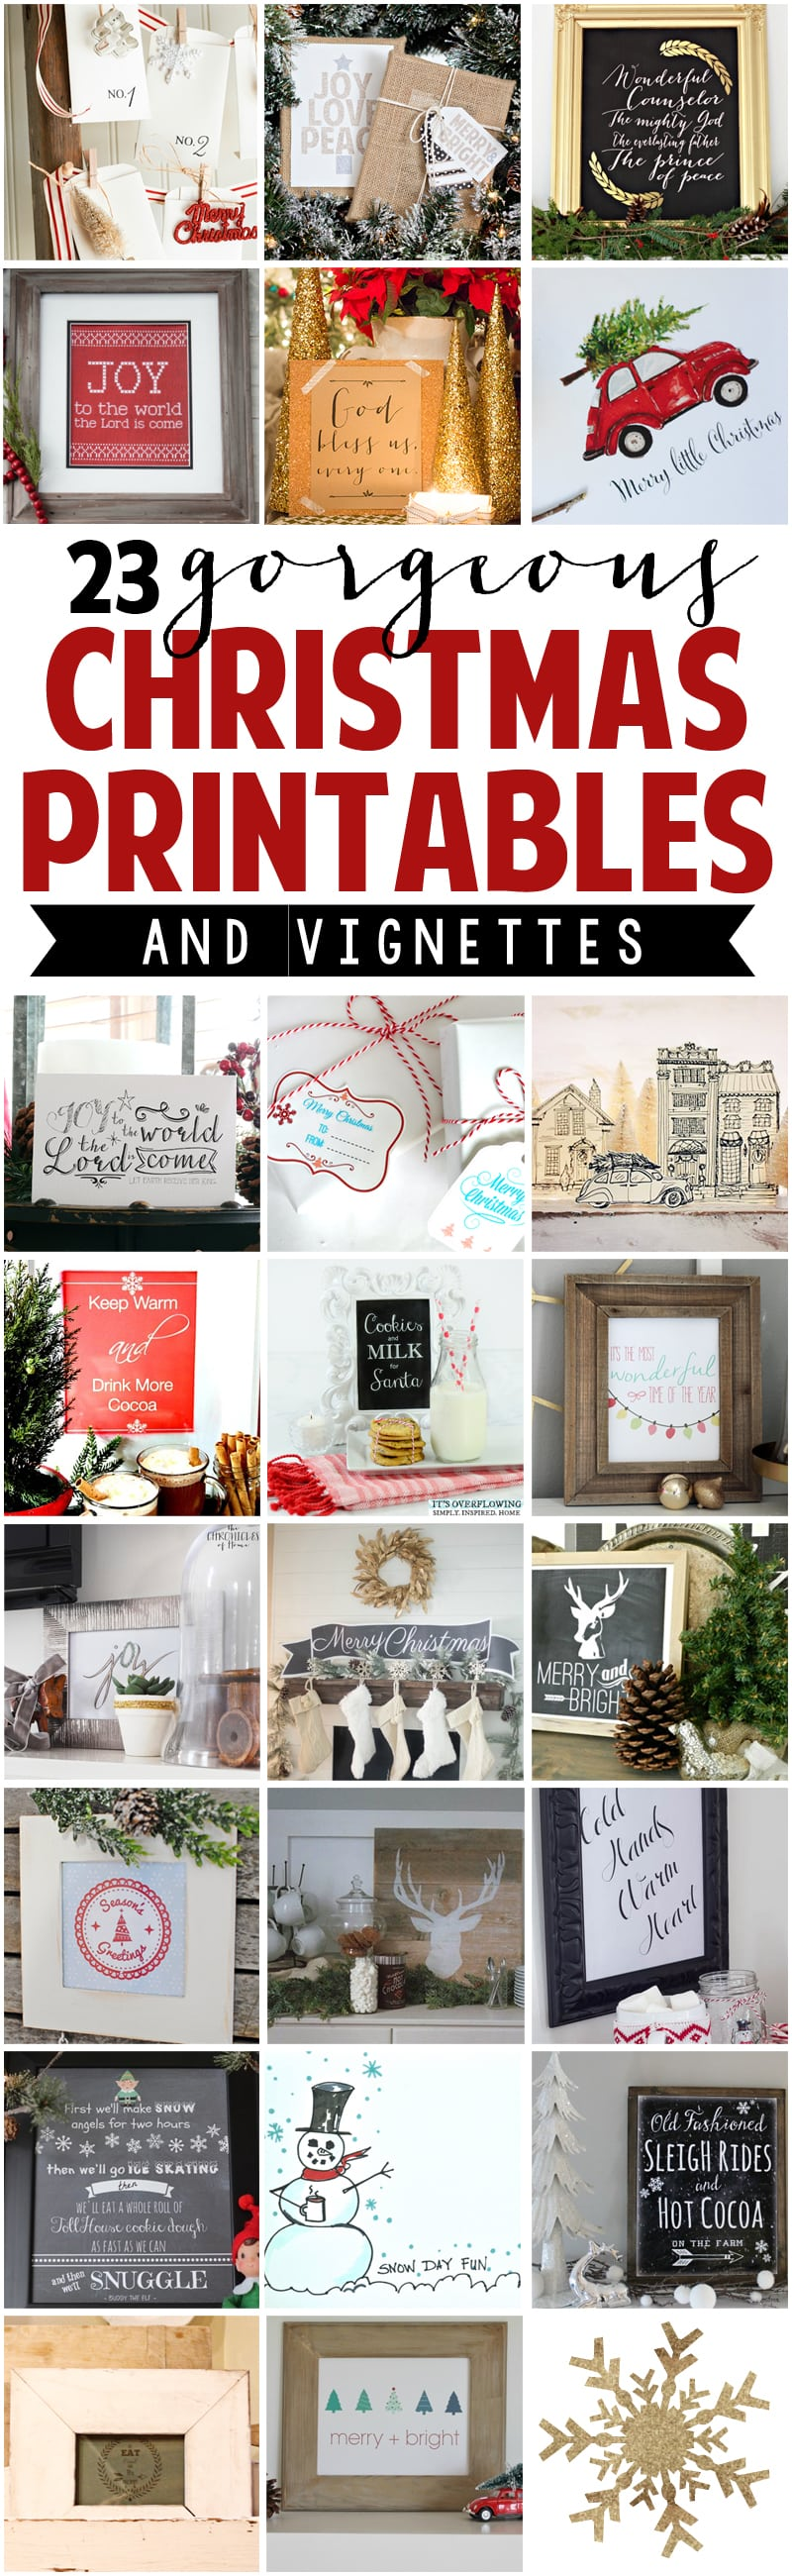 Free Printable Vintage Christmas Advent Calender from Ella Claire